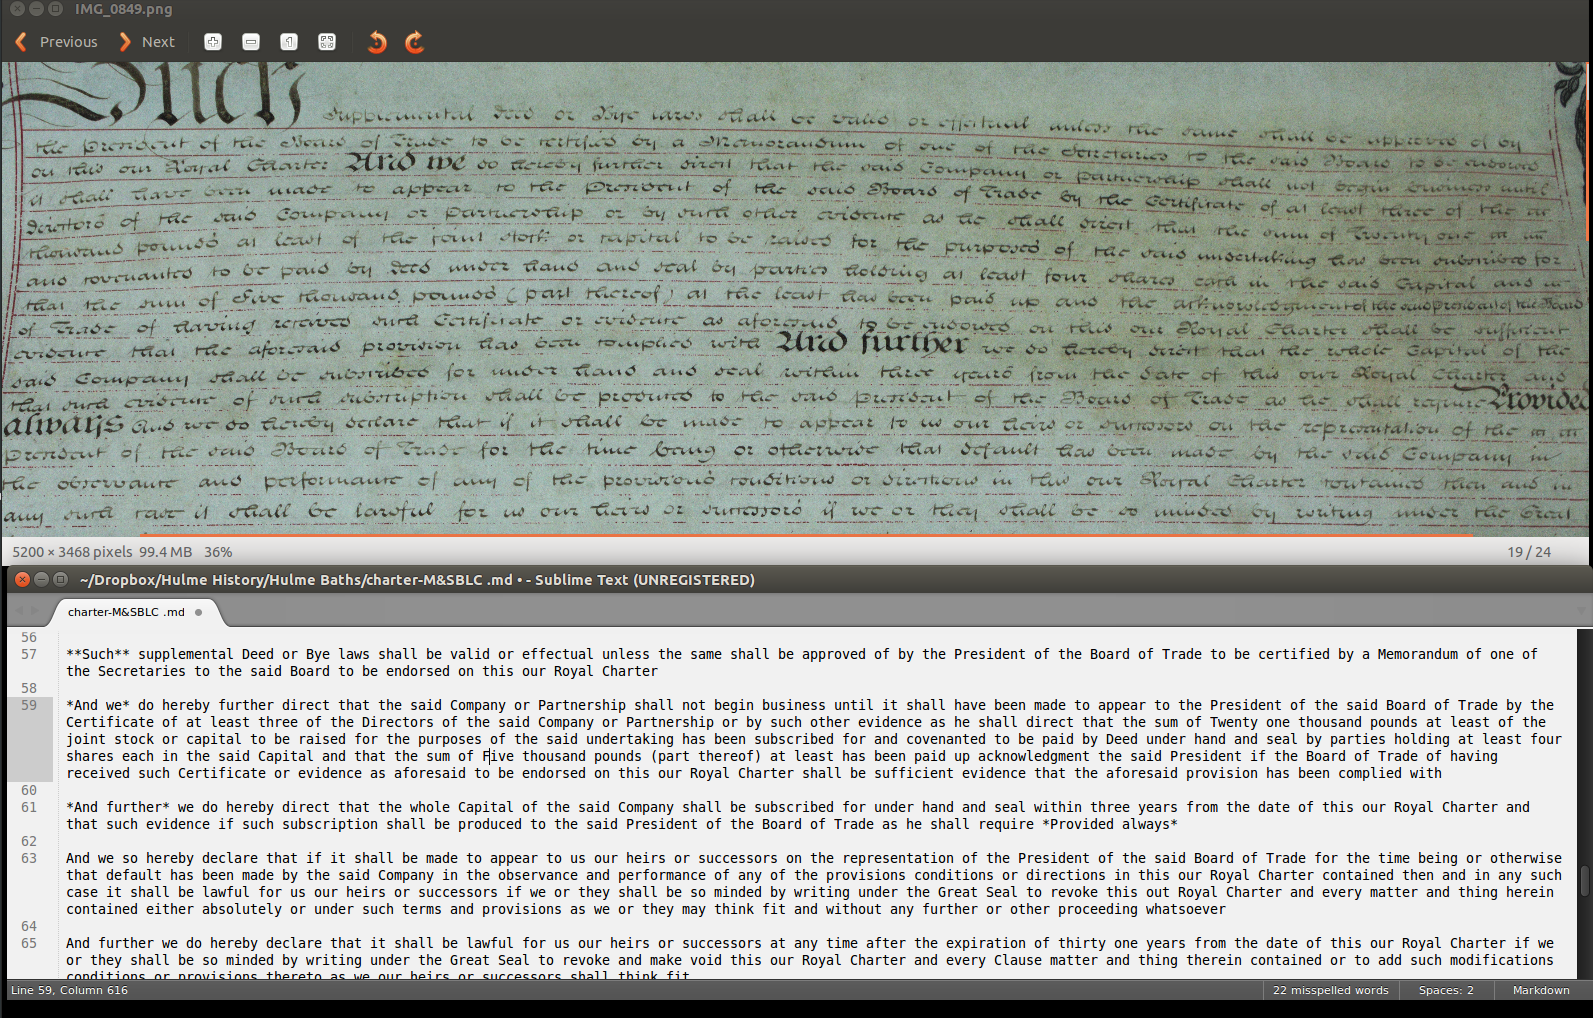 Screenshot showing Charter and transcription